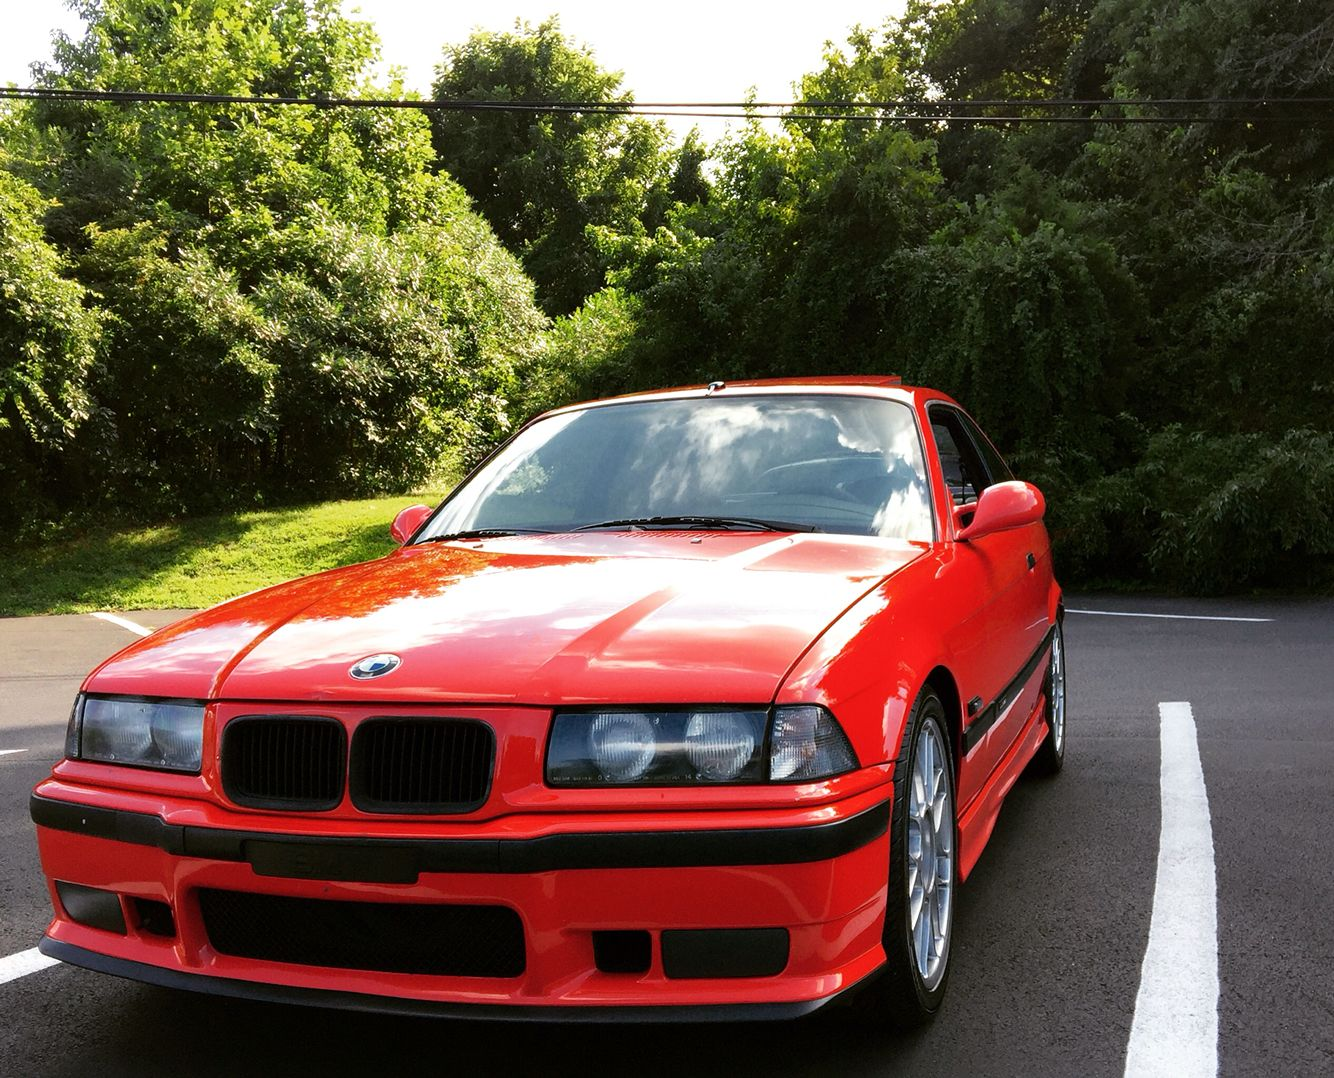 My e36 m3 red Muggello Rot S50b30 coupe Bmw, Coupe, Car